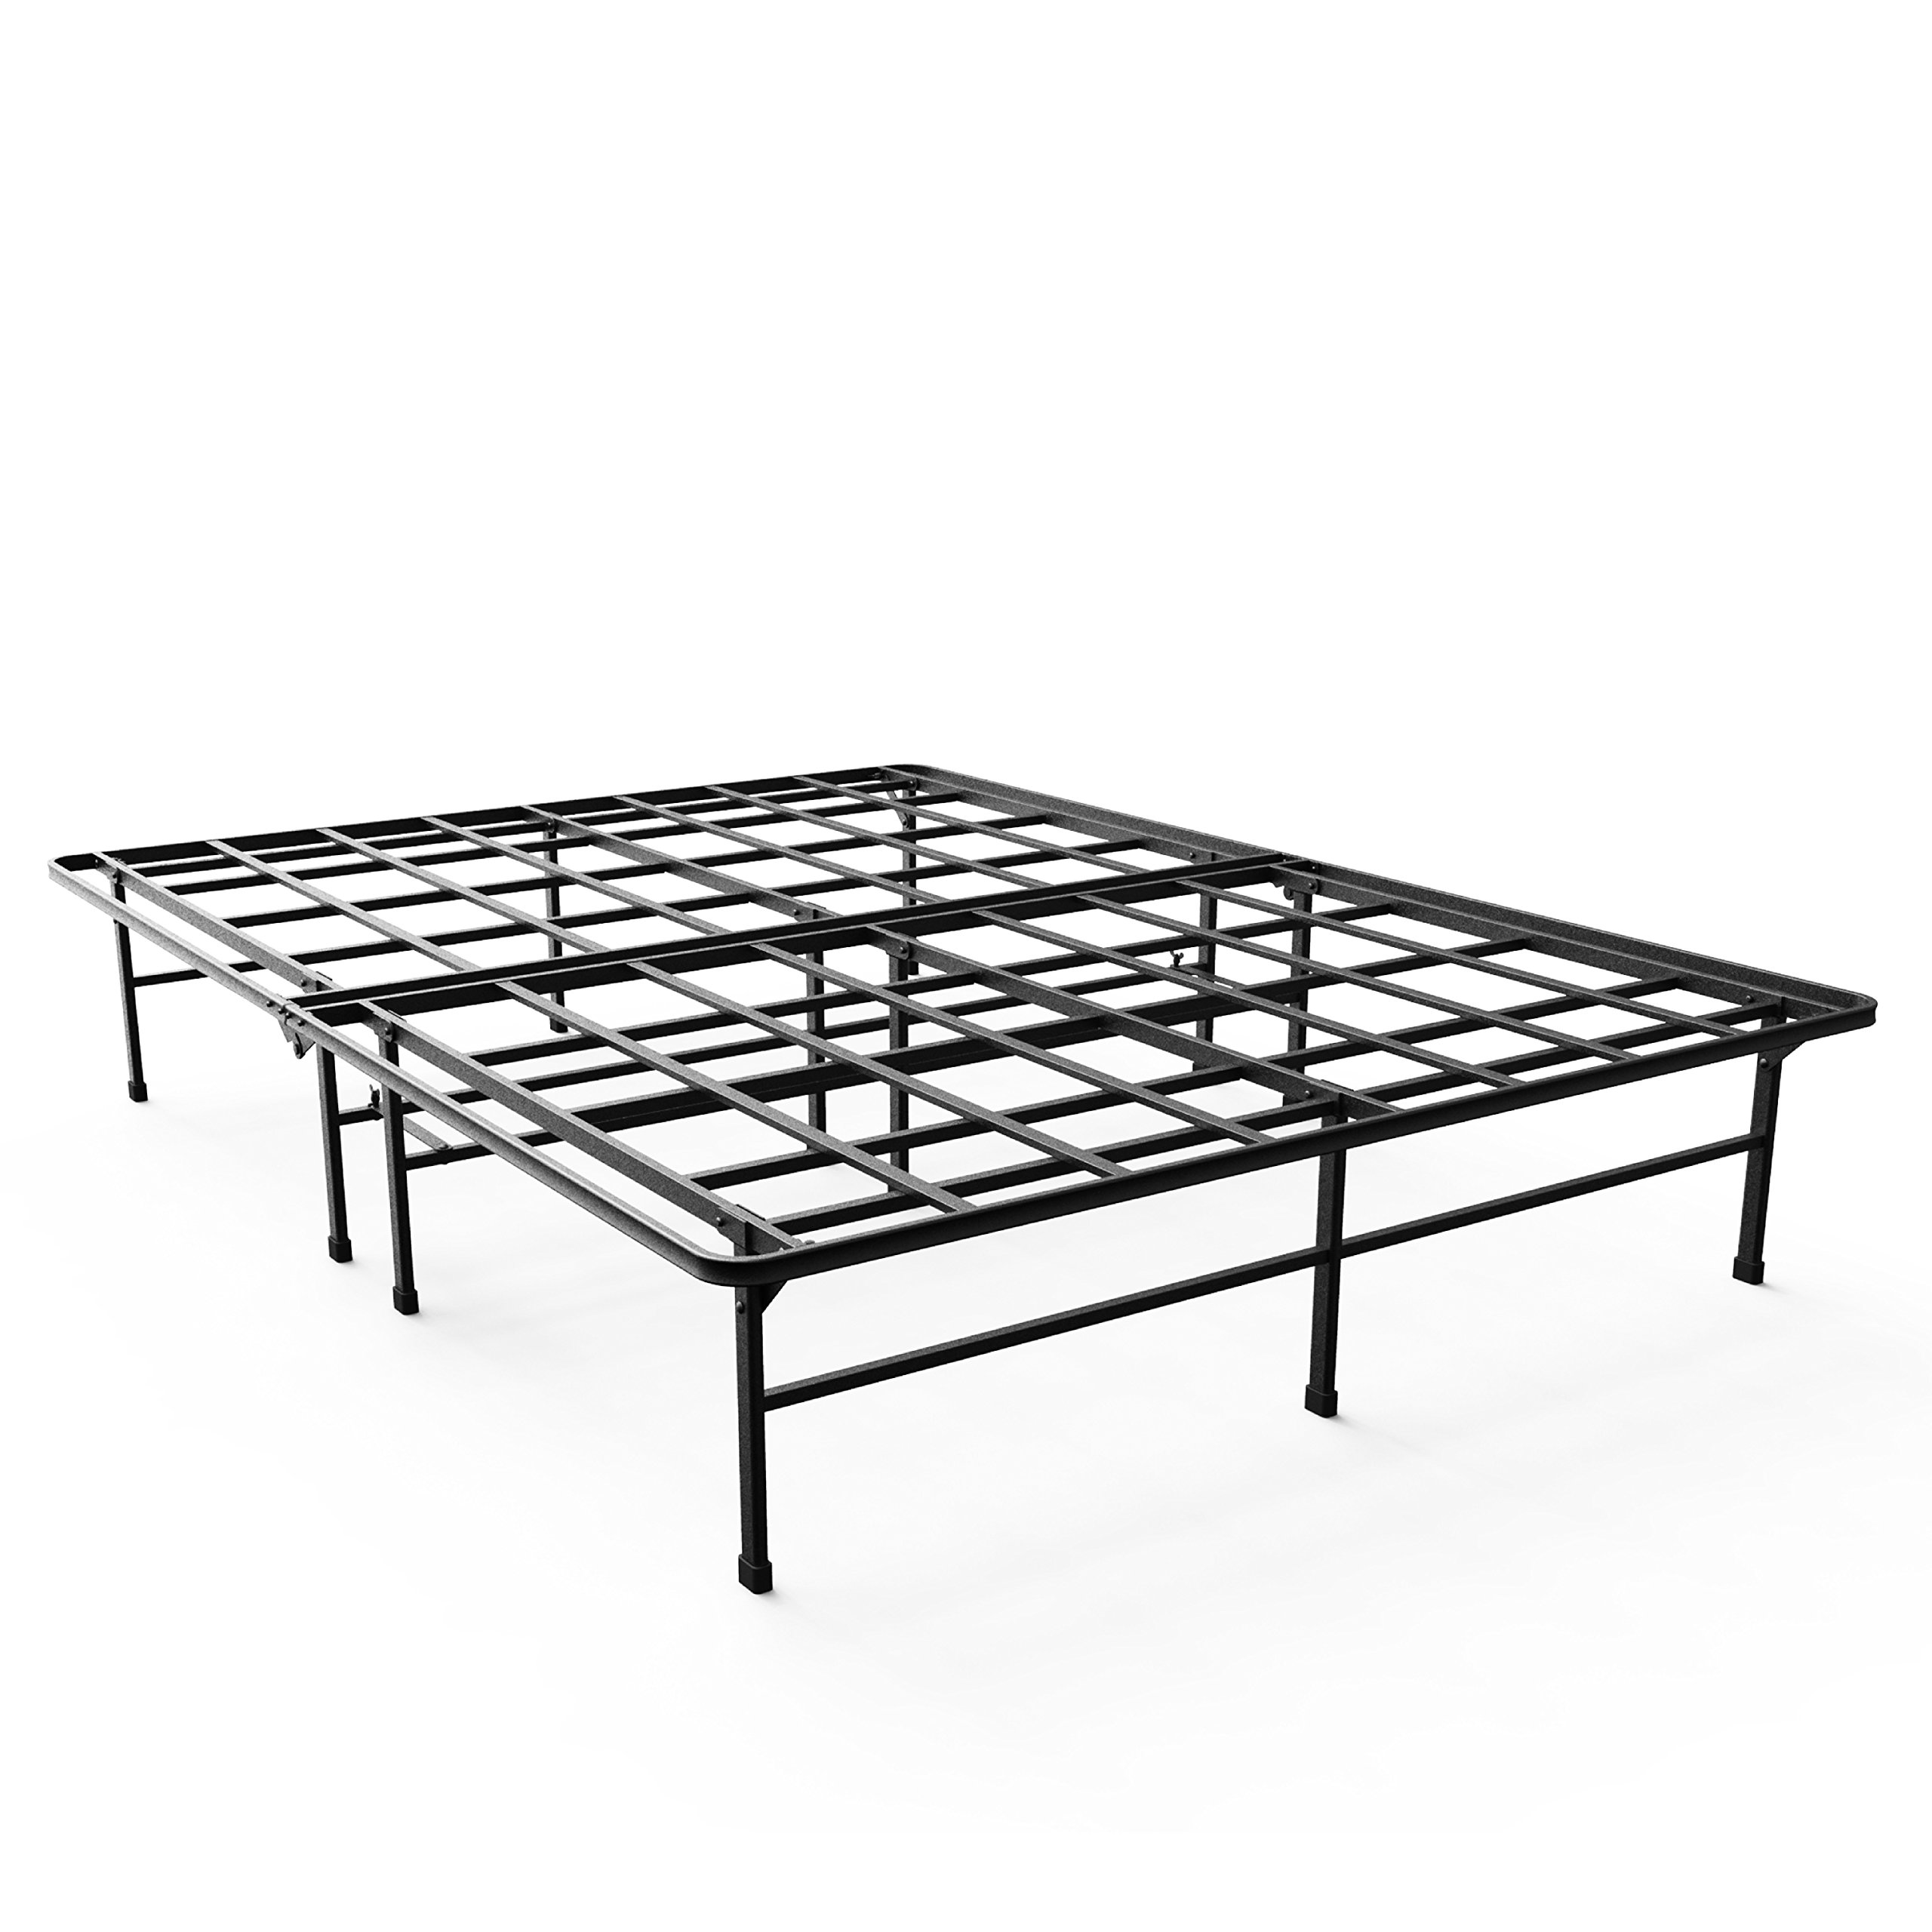 Zinus Demetric 14 Inch Elite SmartBase Mattress Foundation for Big and Tall, Platform Bed Frame ,Sturdy , Noise Free , Non Slip, Queen by Zinus